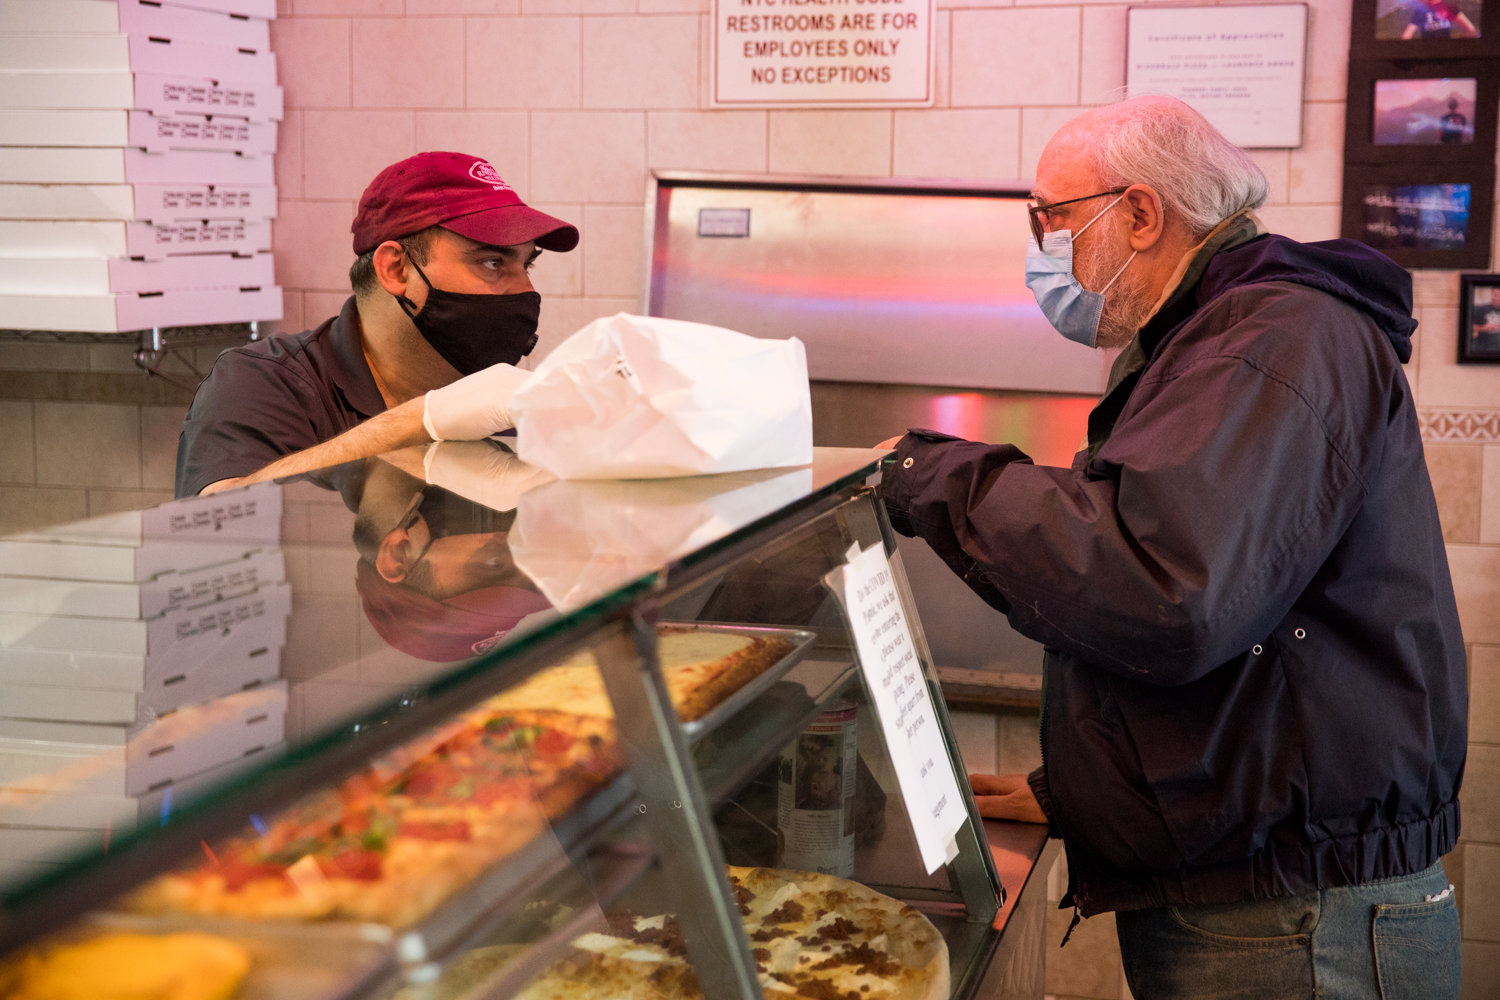 Jody DePasquale, manager of Addeo's Riverdale Pizza, left, talks with a customer while filling his order. The North Riverdale pizza place has met the challenge posed by the coronavirus pandemic, managing to stay open. DePasquale and his workers have gone to greater lengths to help the community by running errands for customers.